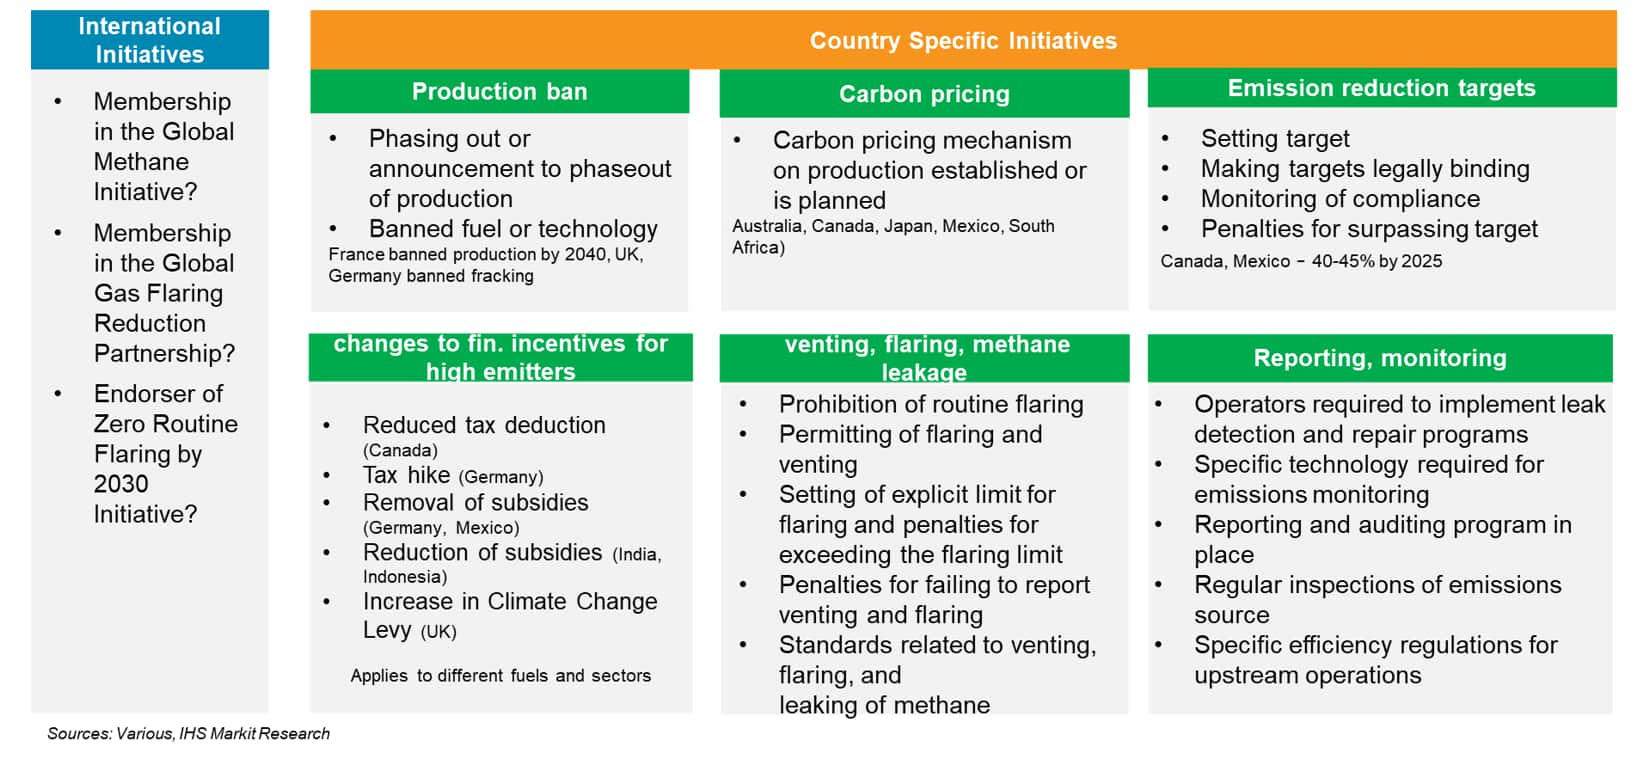 GHG emissions country initiatives